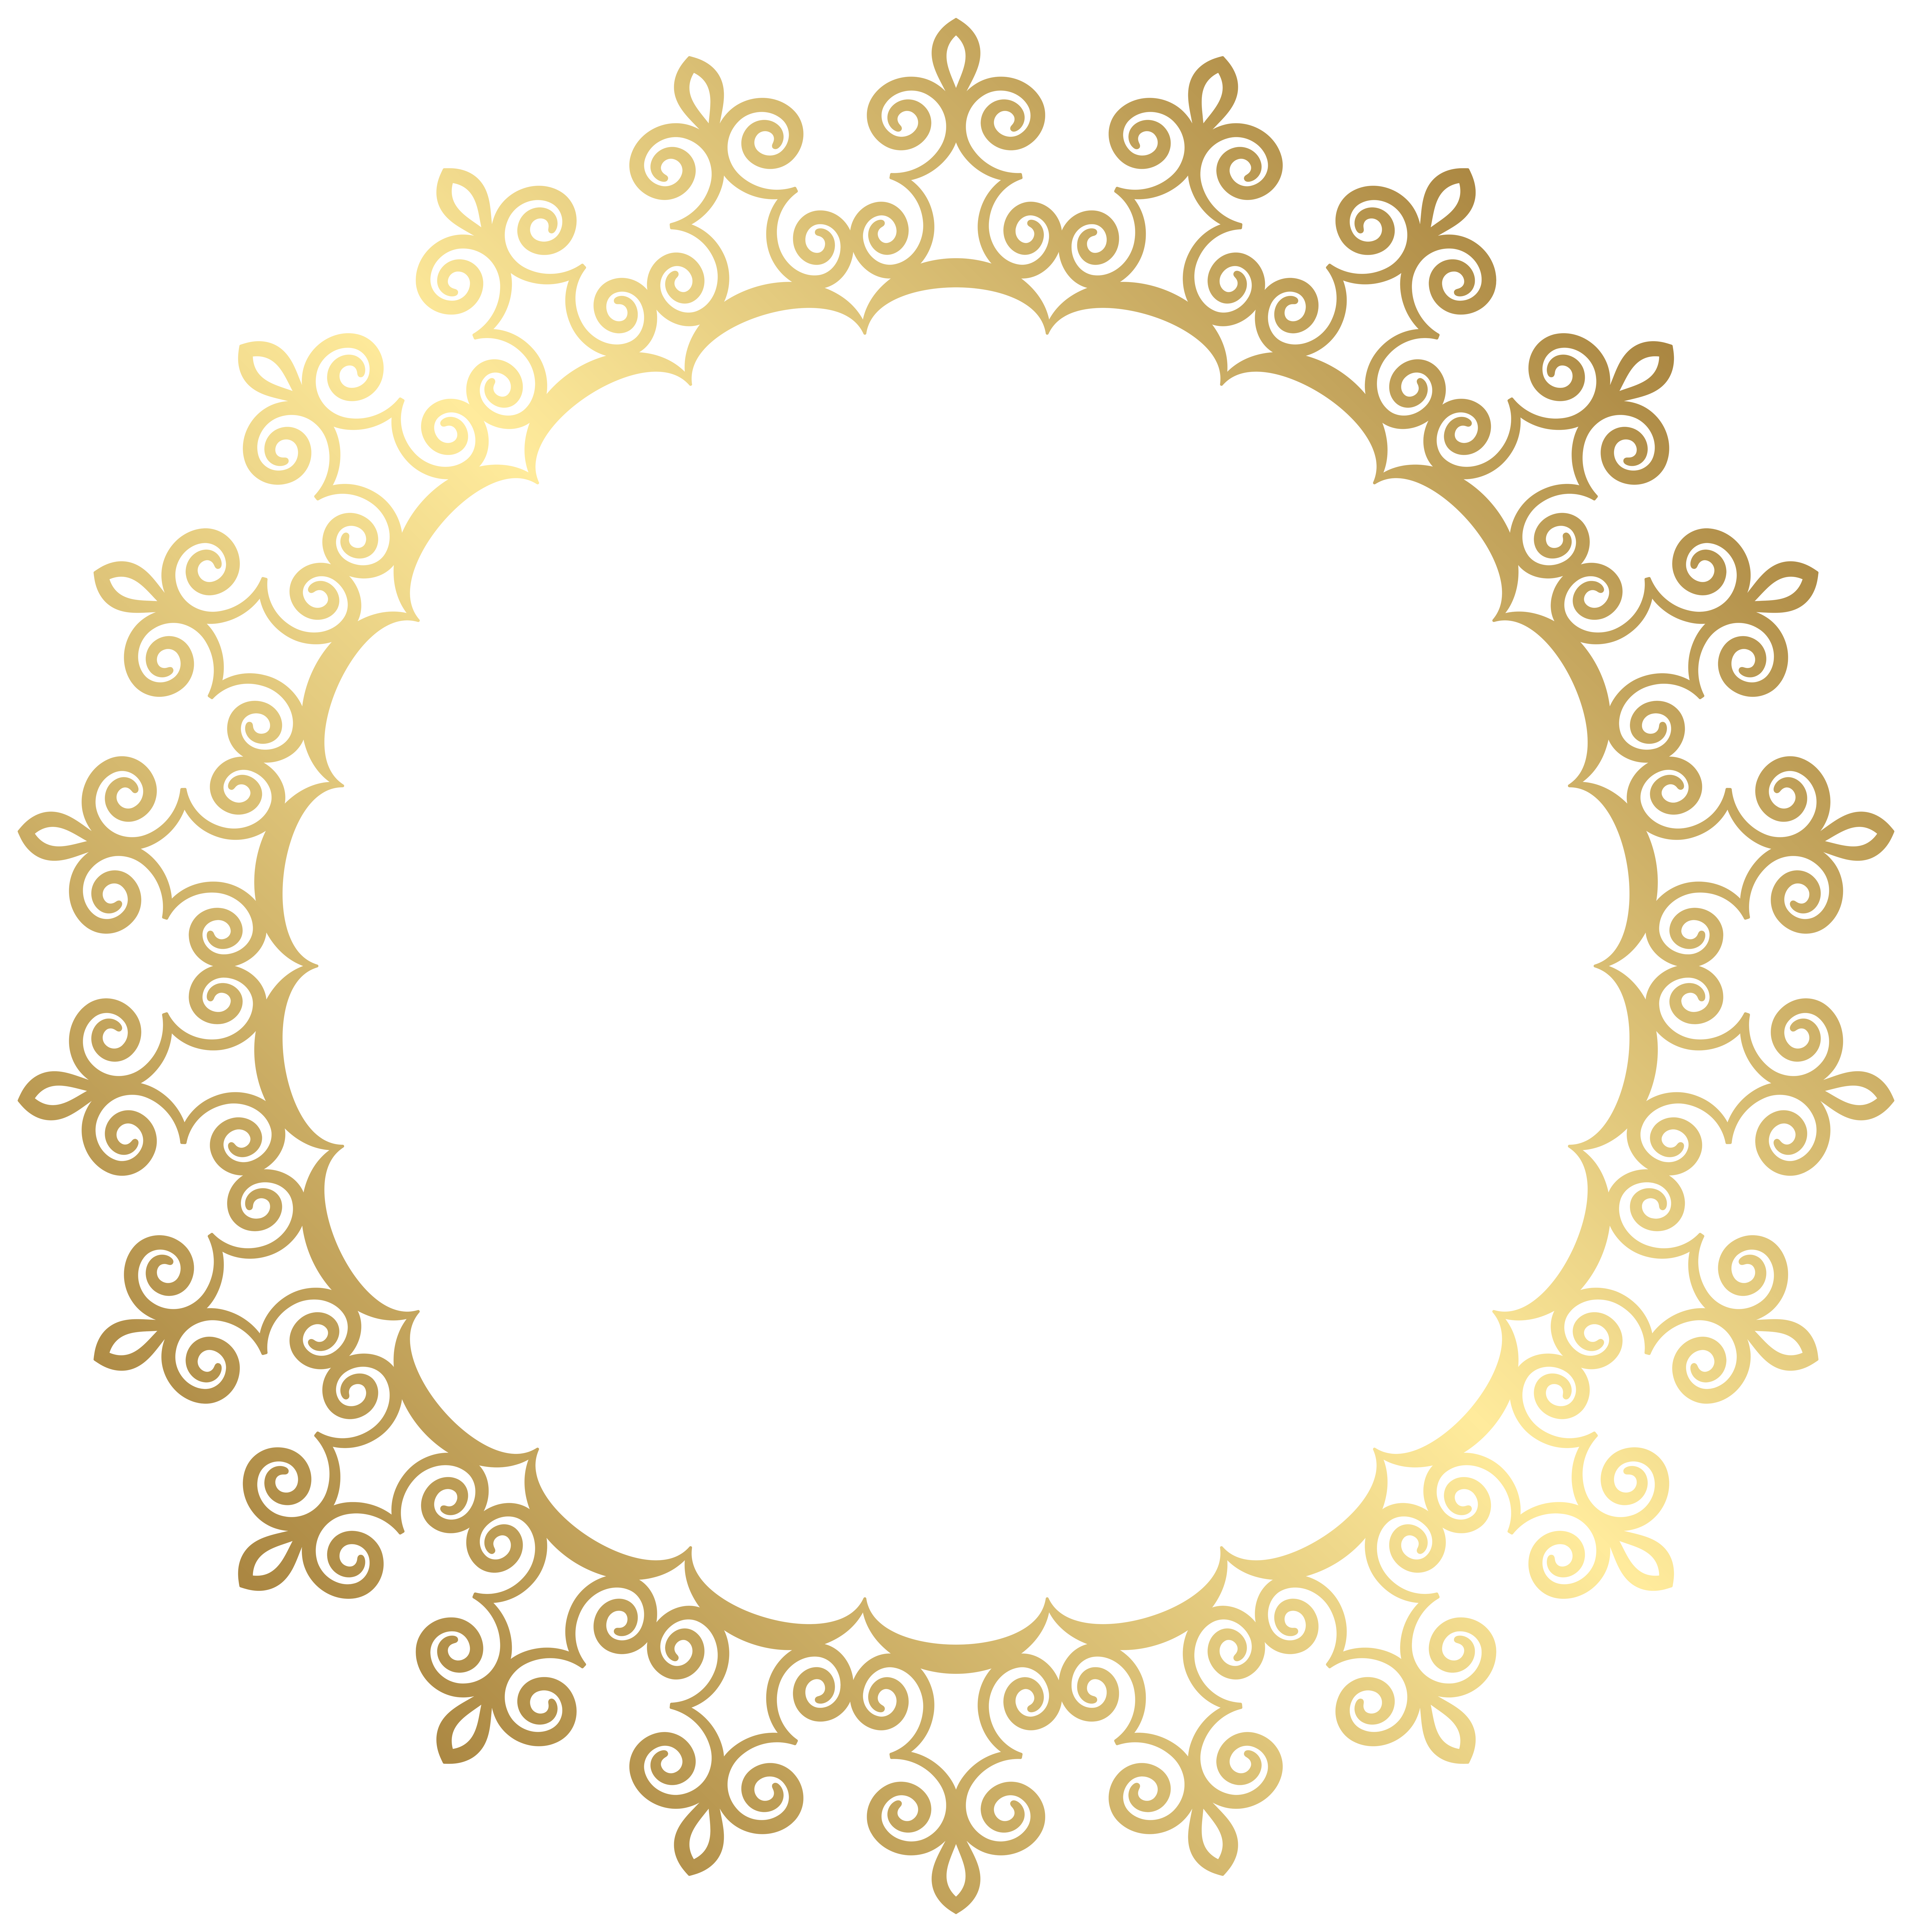 Gold Border Clipart   Free download on ClipArtMag